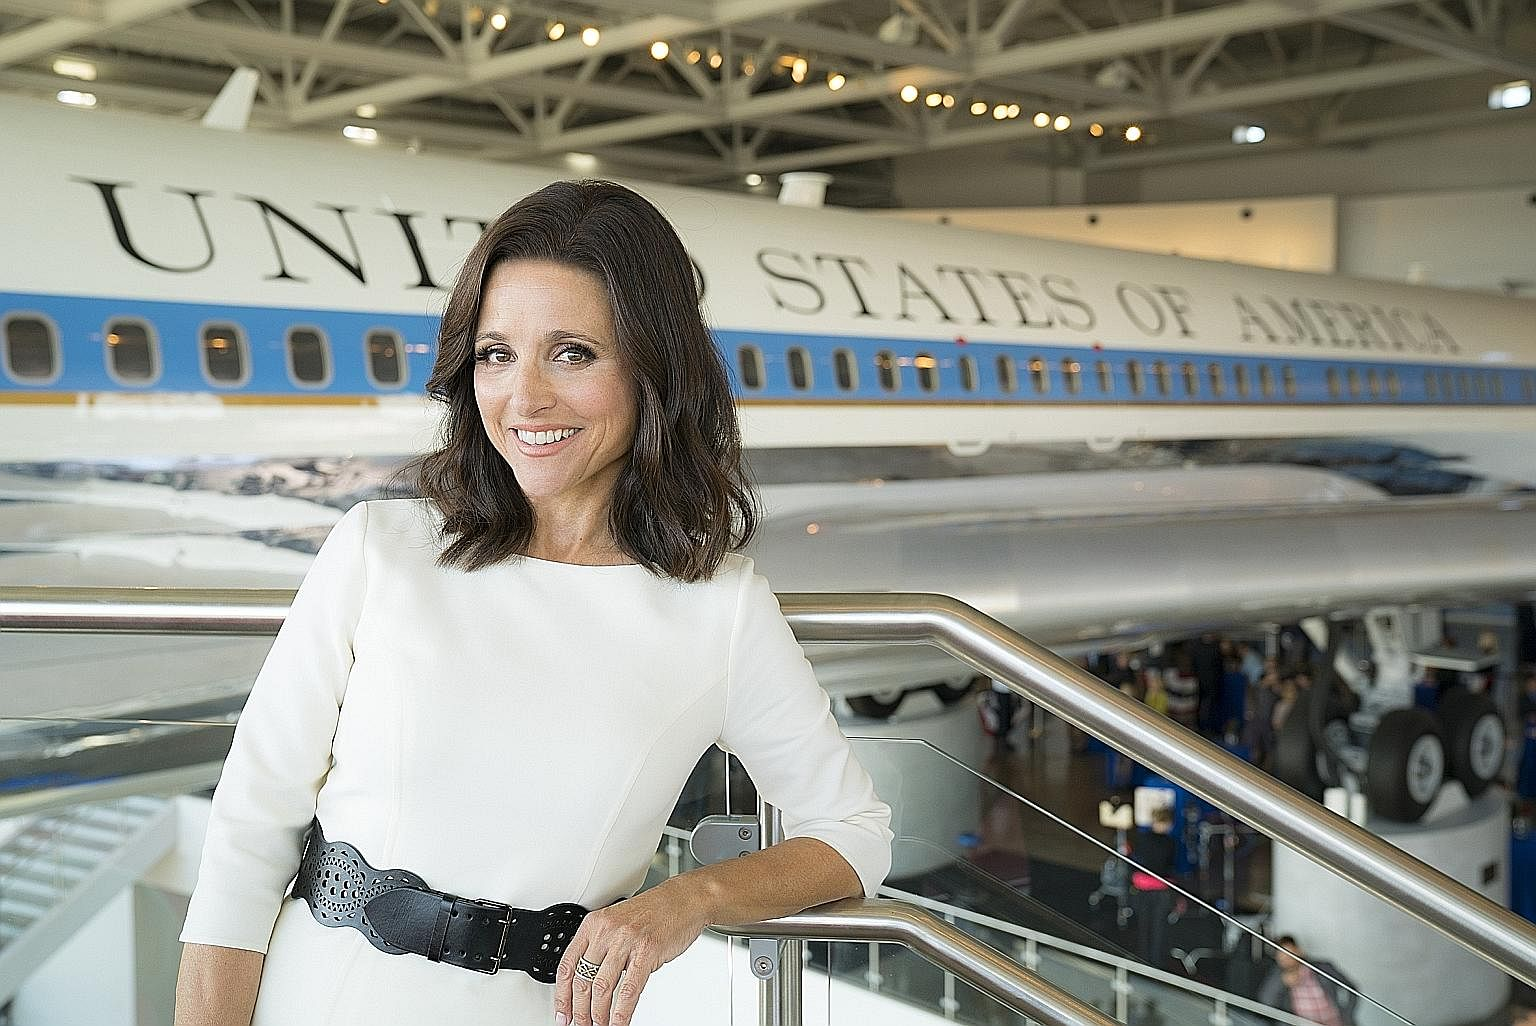 US Vice- President Selina Meyer (played by Julia Louis- Dreyfus, above) continues in her misadventures on Veep.